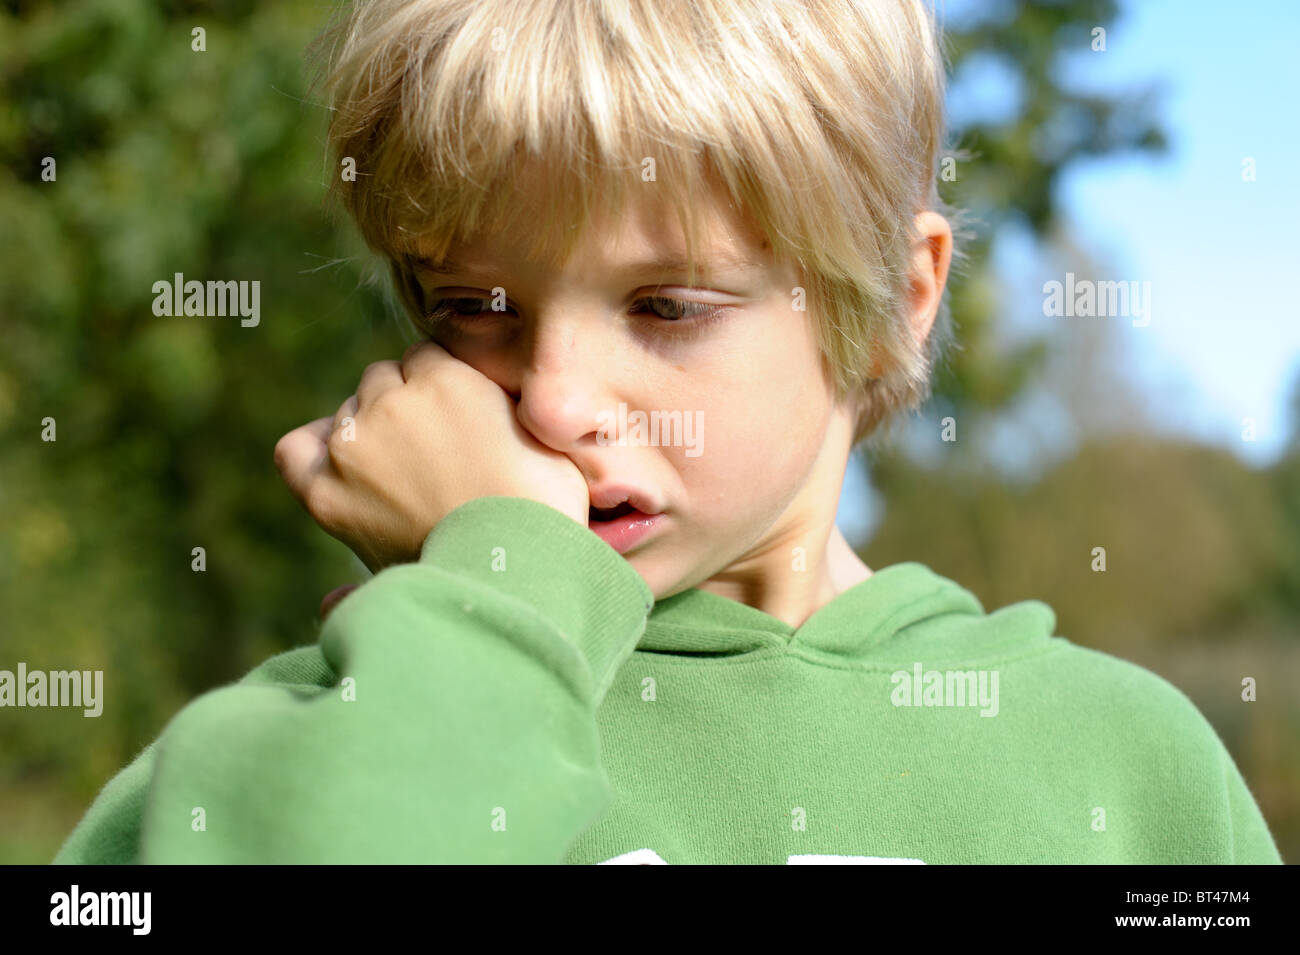 Sad, tired and tearful blond-haired little boy in a green top standing outside alone after being bullied by friends - Stock Image